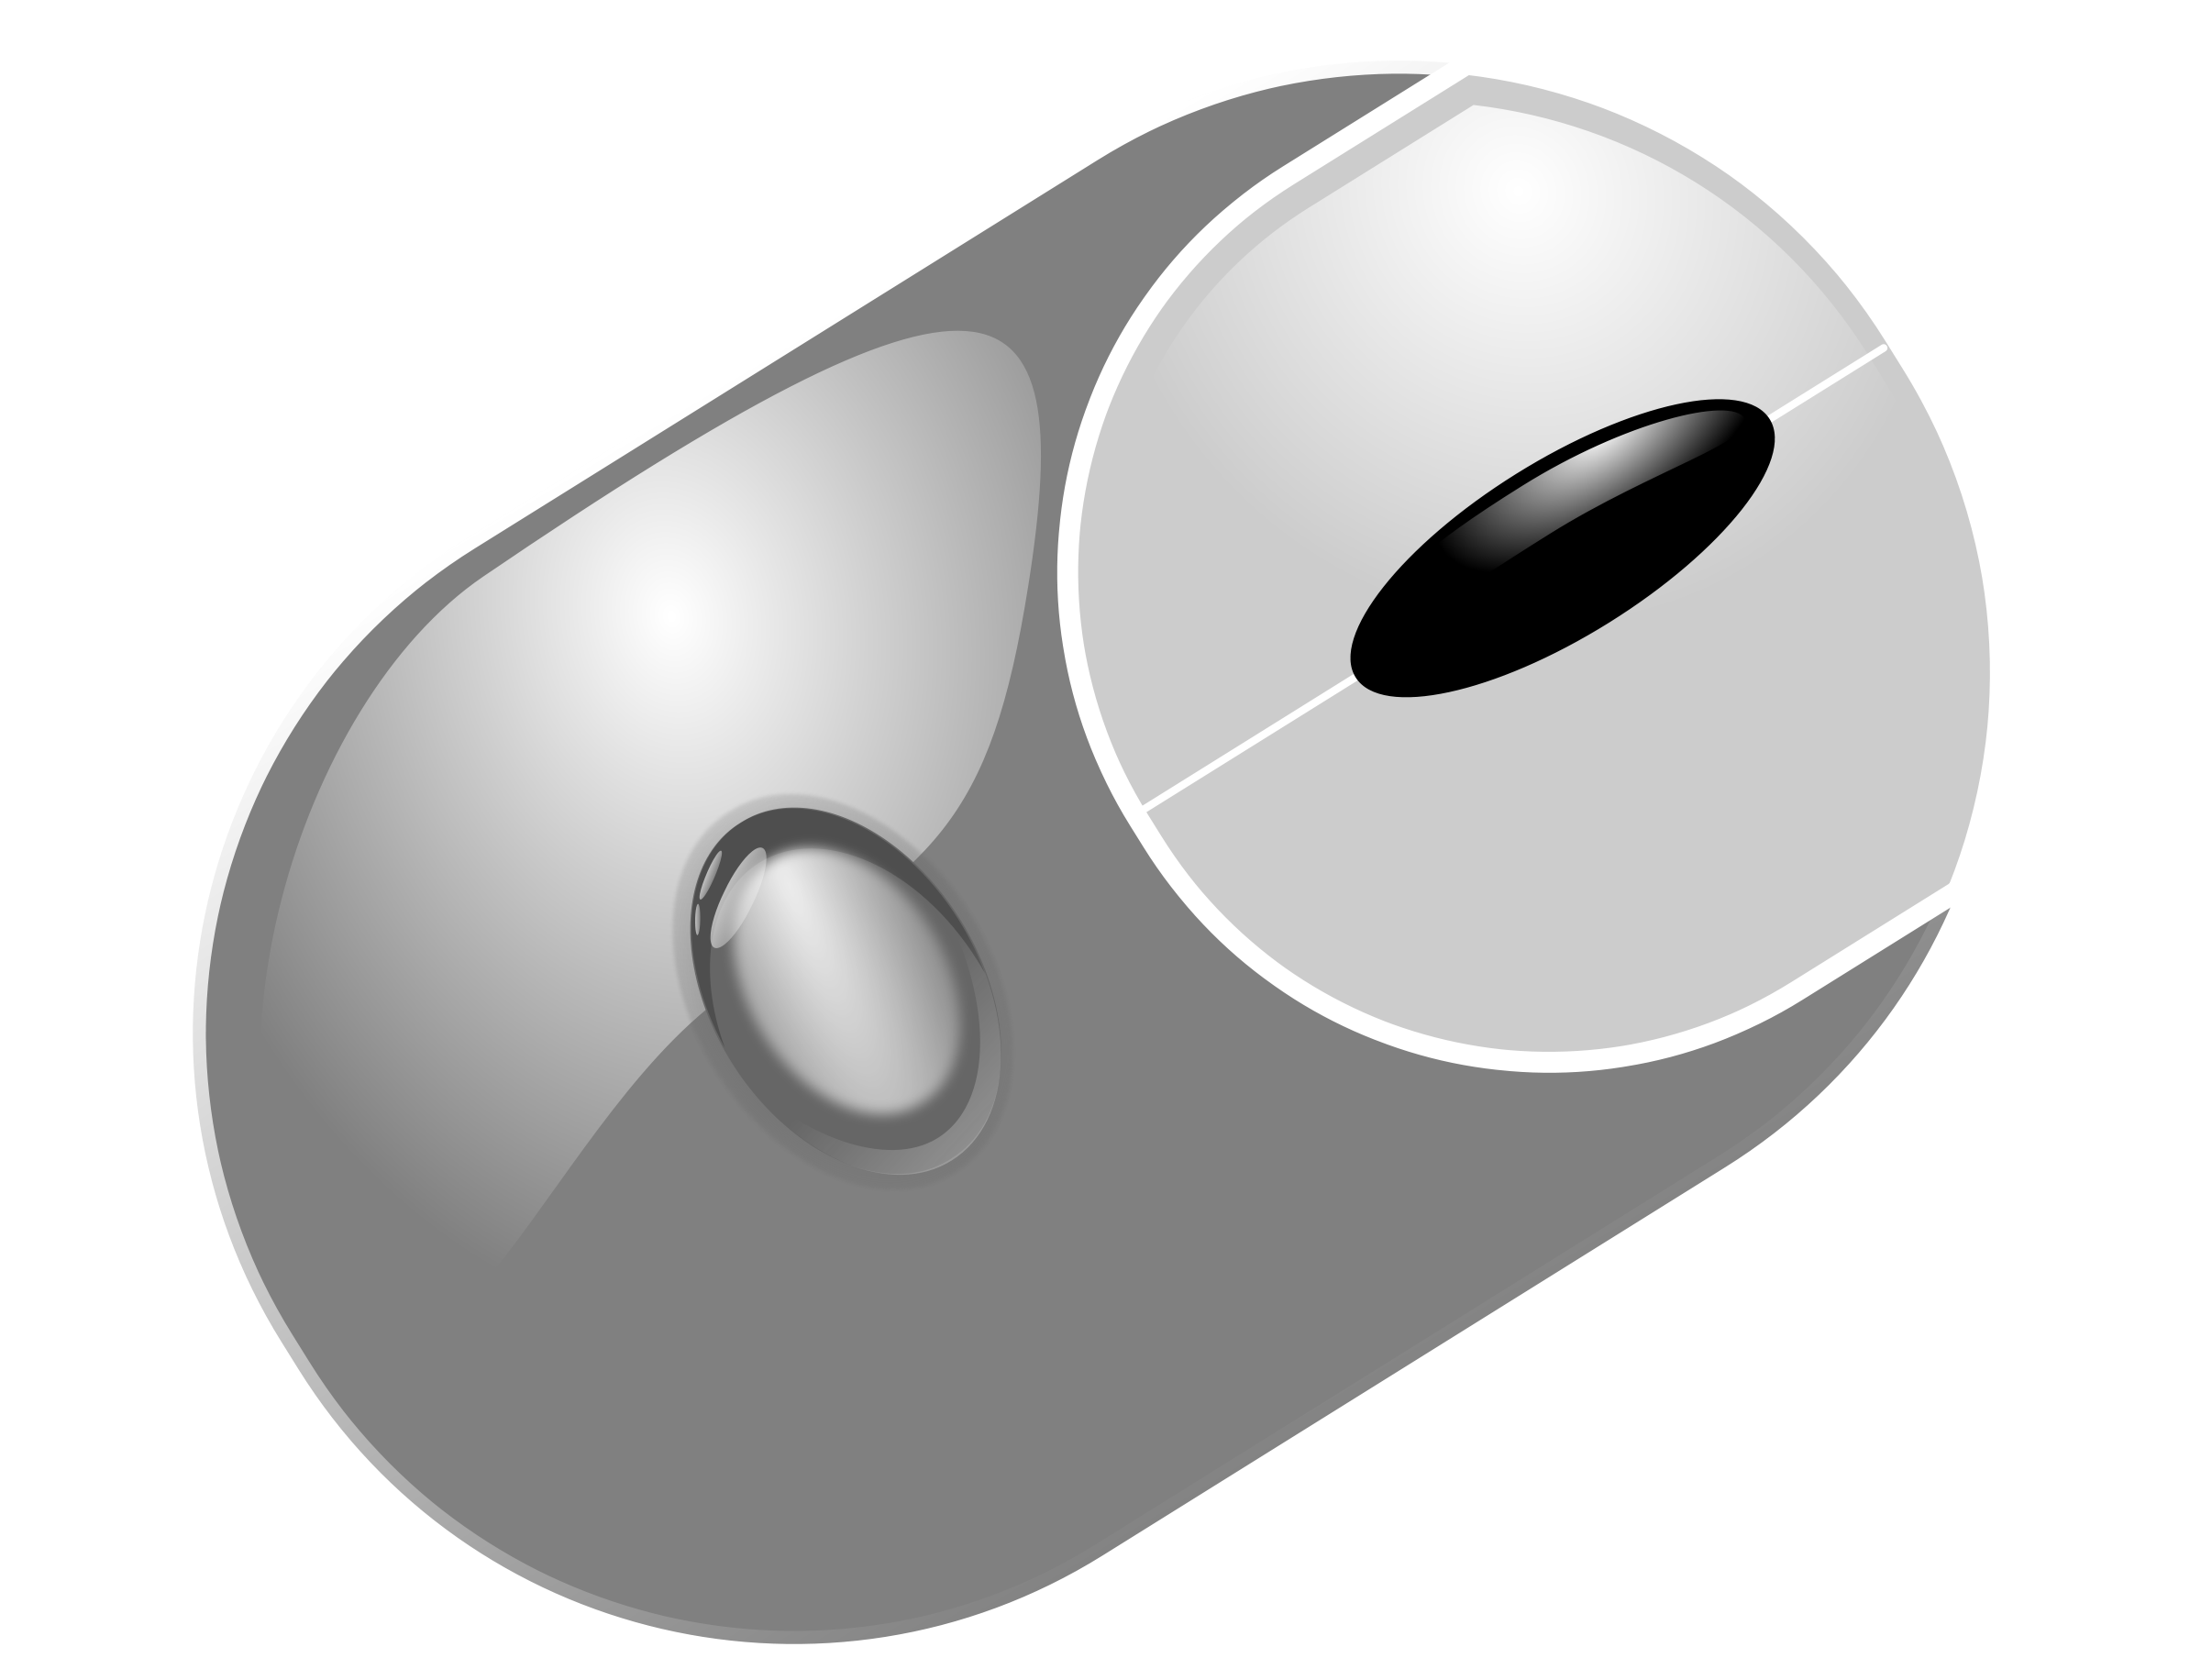 Picture Of Computer Mouse.